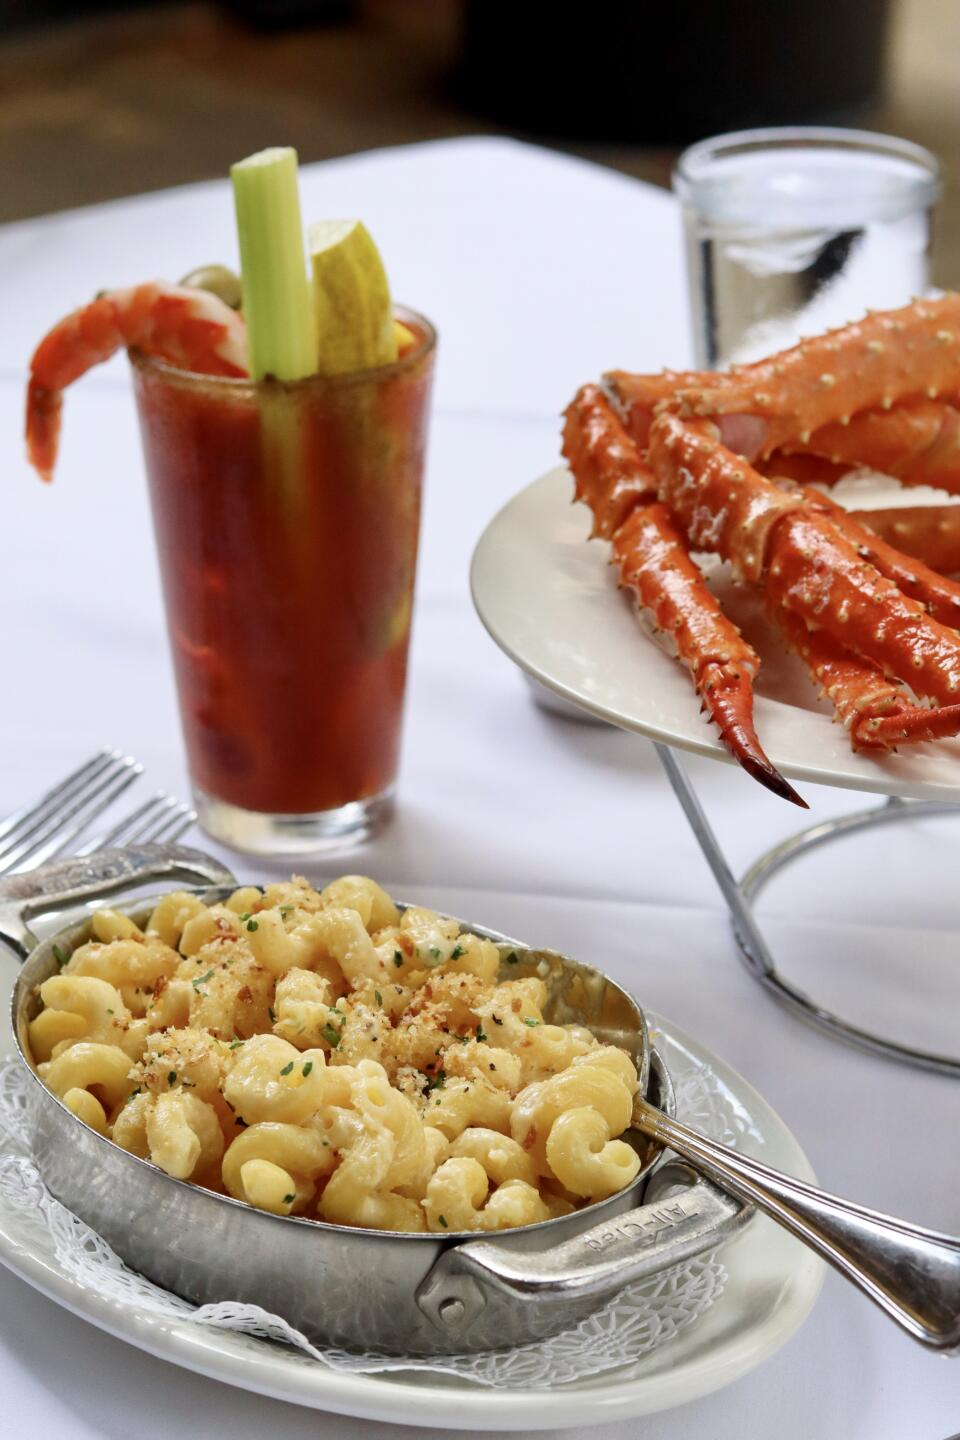 mac and cheese and crab legs with bloody mary at shaw's crab house